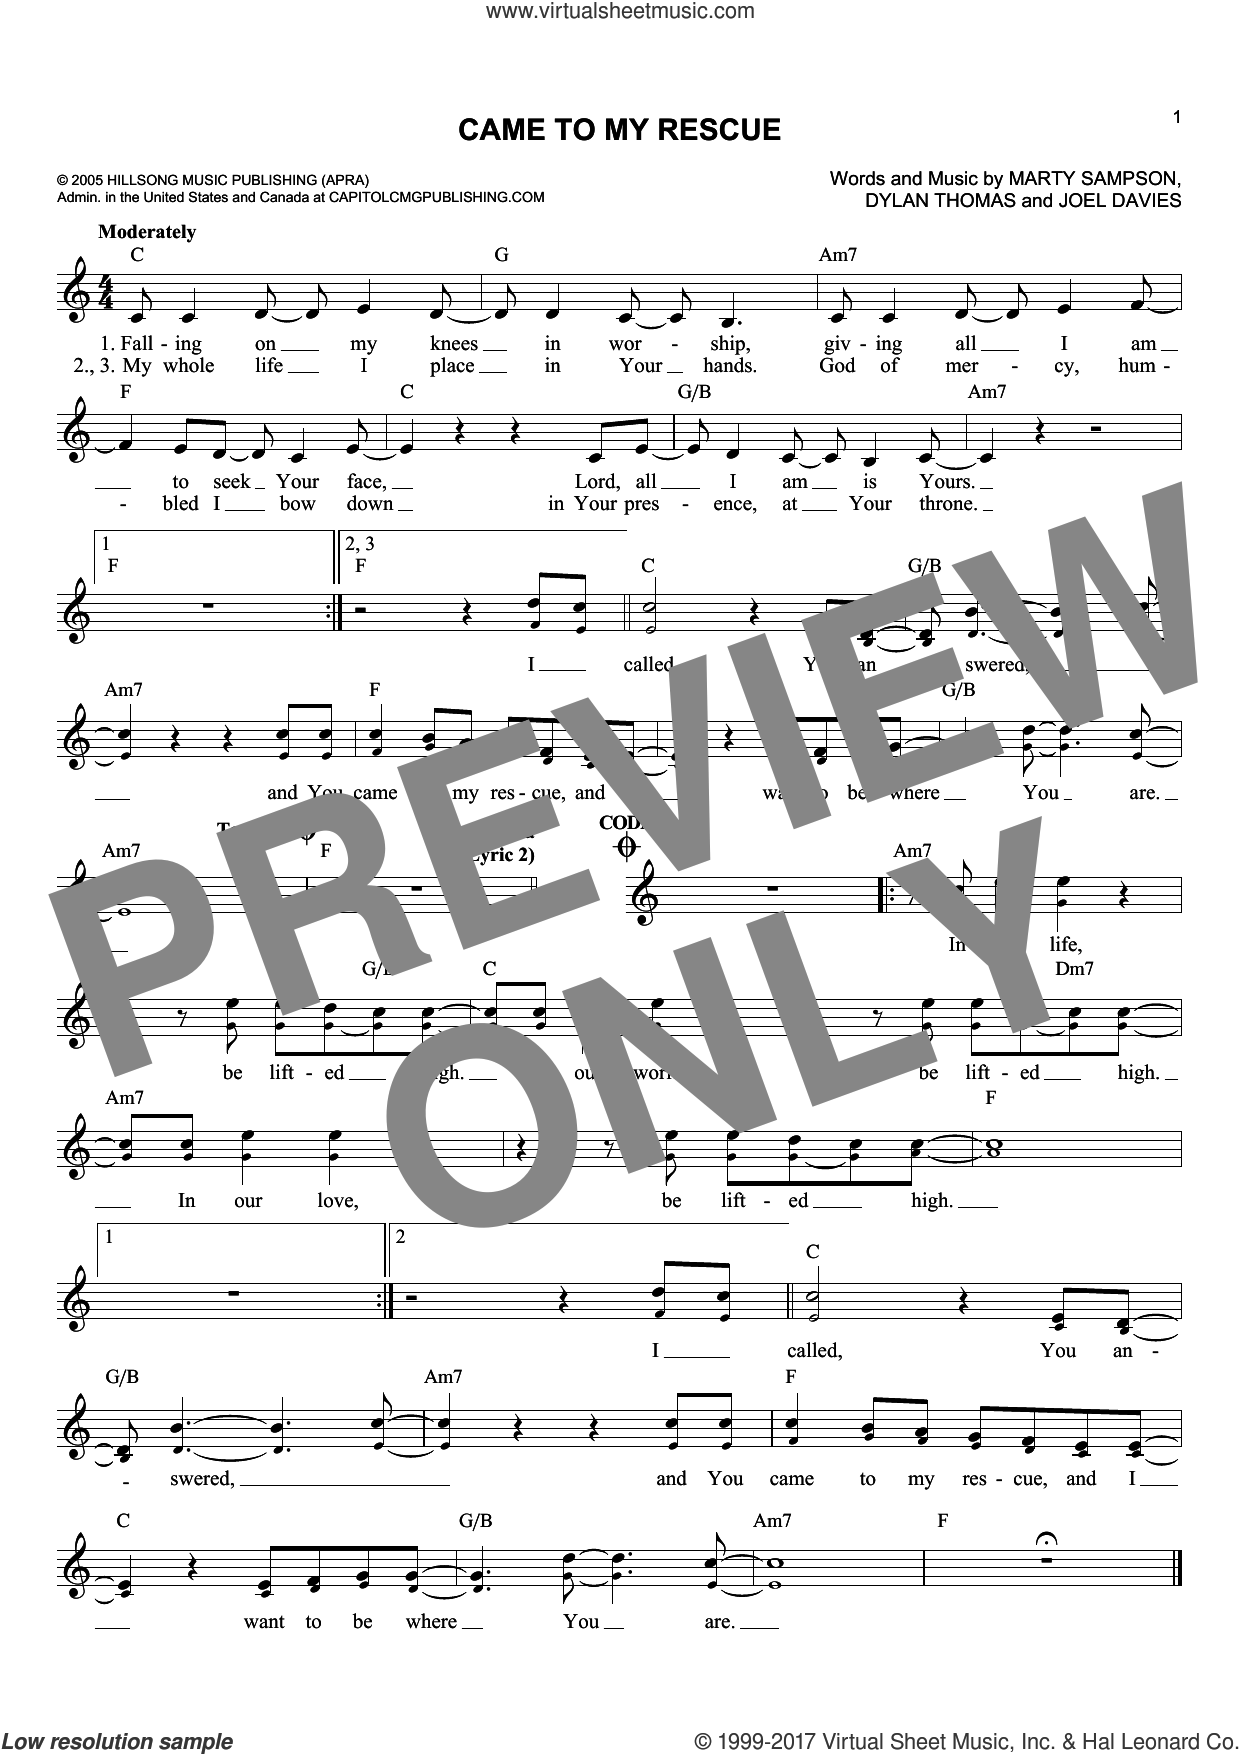 Came To My Rescue sheet music for voice and other instruments (fake book) by Marty Sampson, Dylan Thomas and Joel Davies, intermediate voice. Score Image Preview.